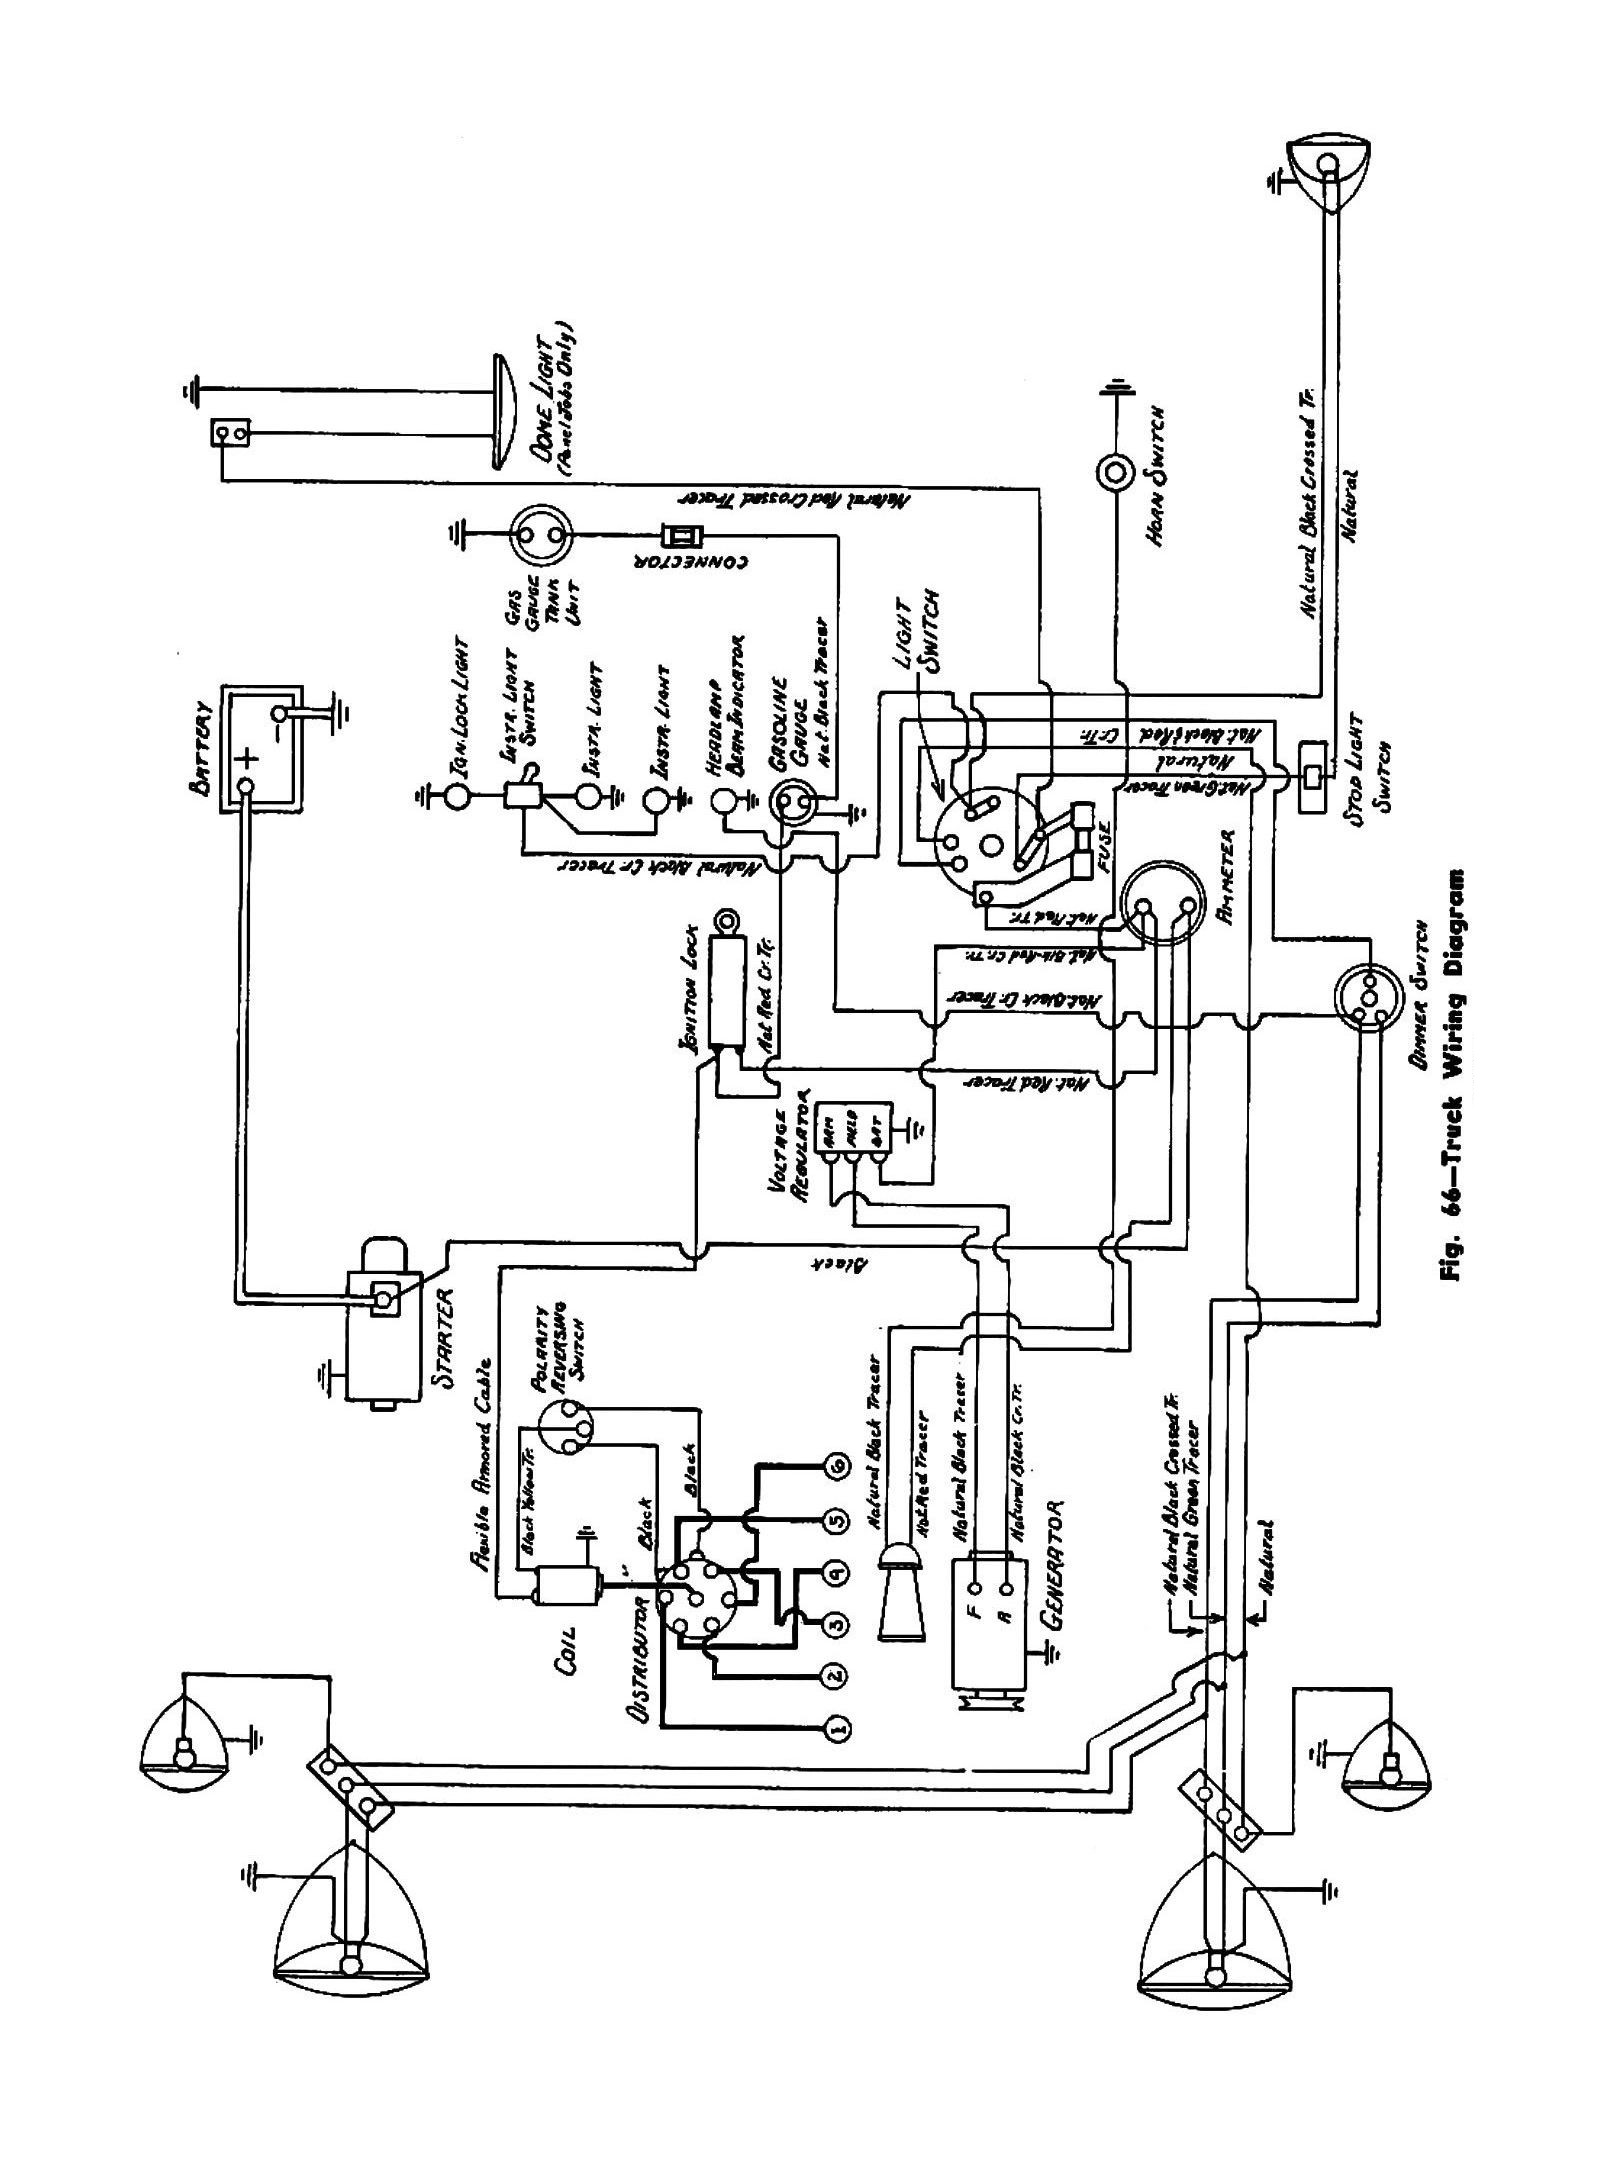 45truck chevy wiring diagrams 7.3 IDI Engine Wiring Diagram at edmiracle.co